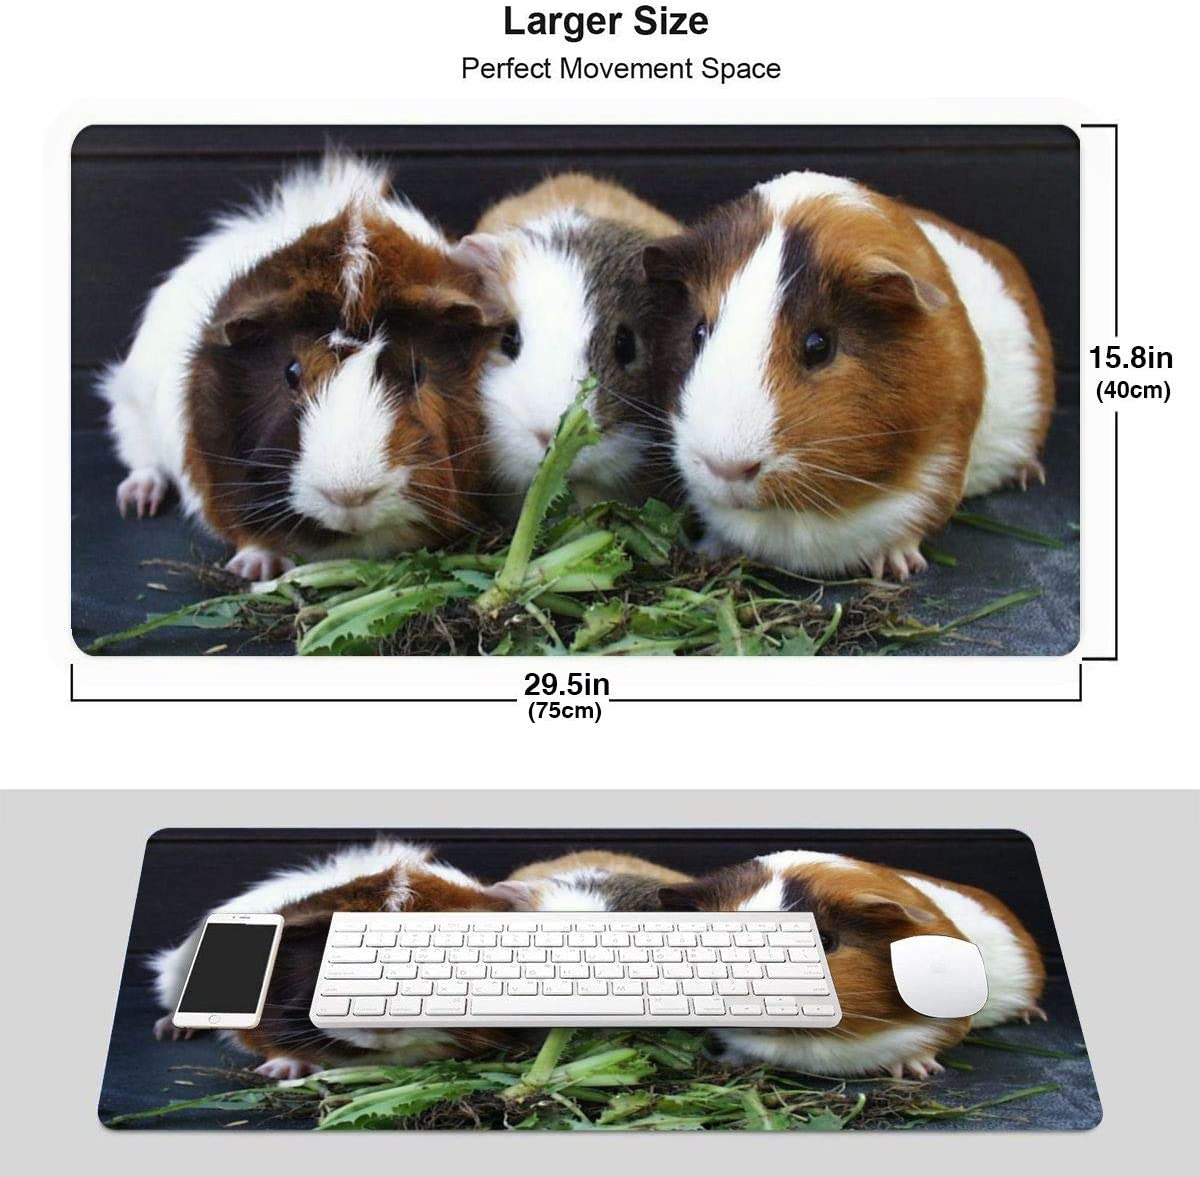 Non-Slip Rubber Base with Durable Stitched Edges for Desktop Laptop Keyboard Consoles 29.5x15.8x0.12 in NCUEMOU Bamboo Rat Gaming Mouse Pad,Large Mouse Pad